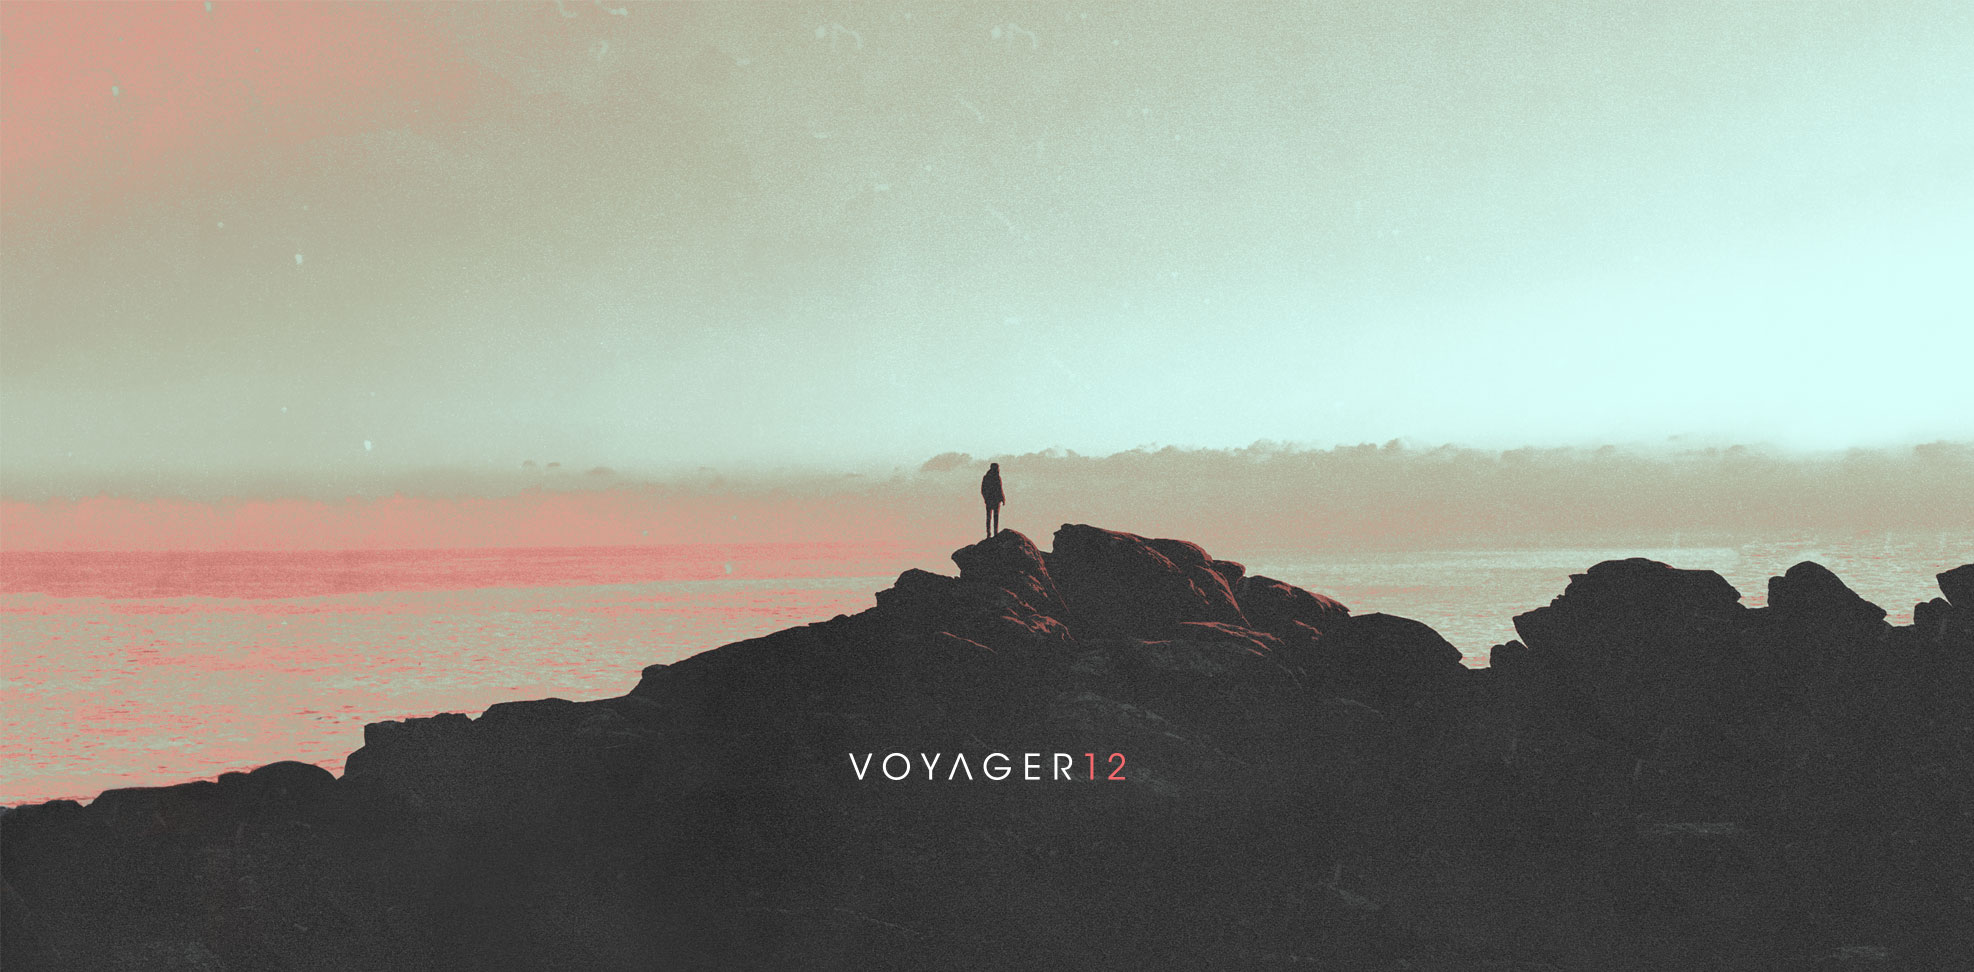 T5-voyager12